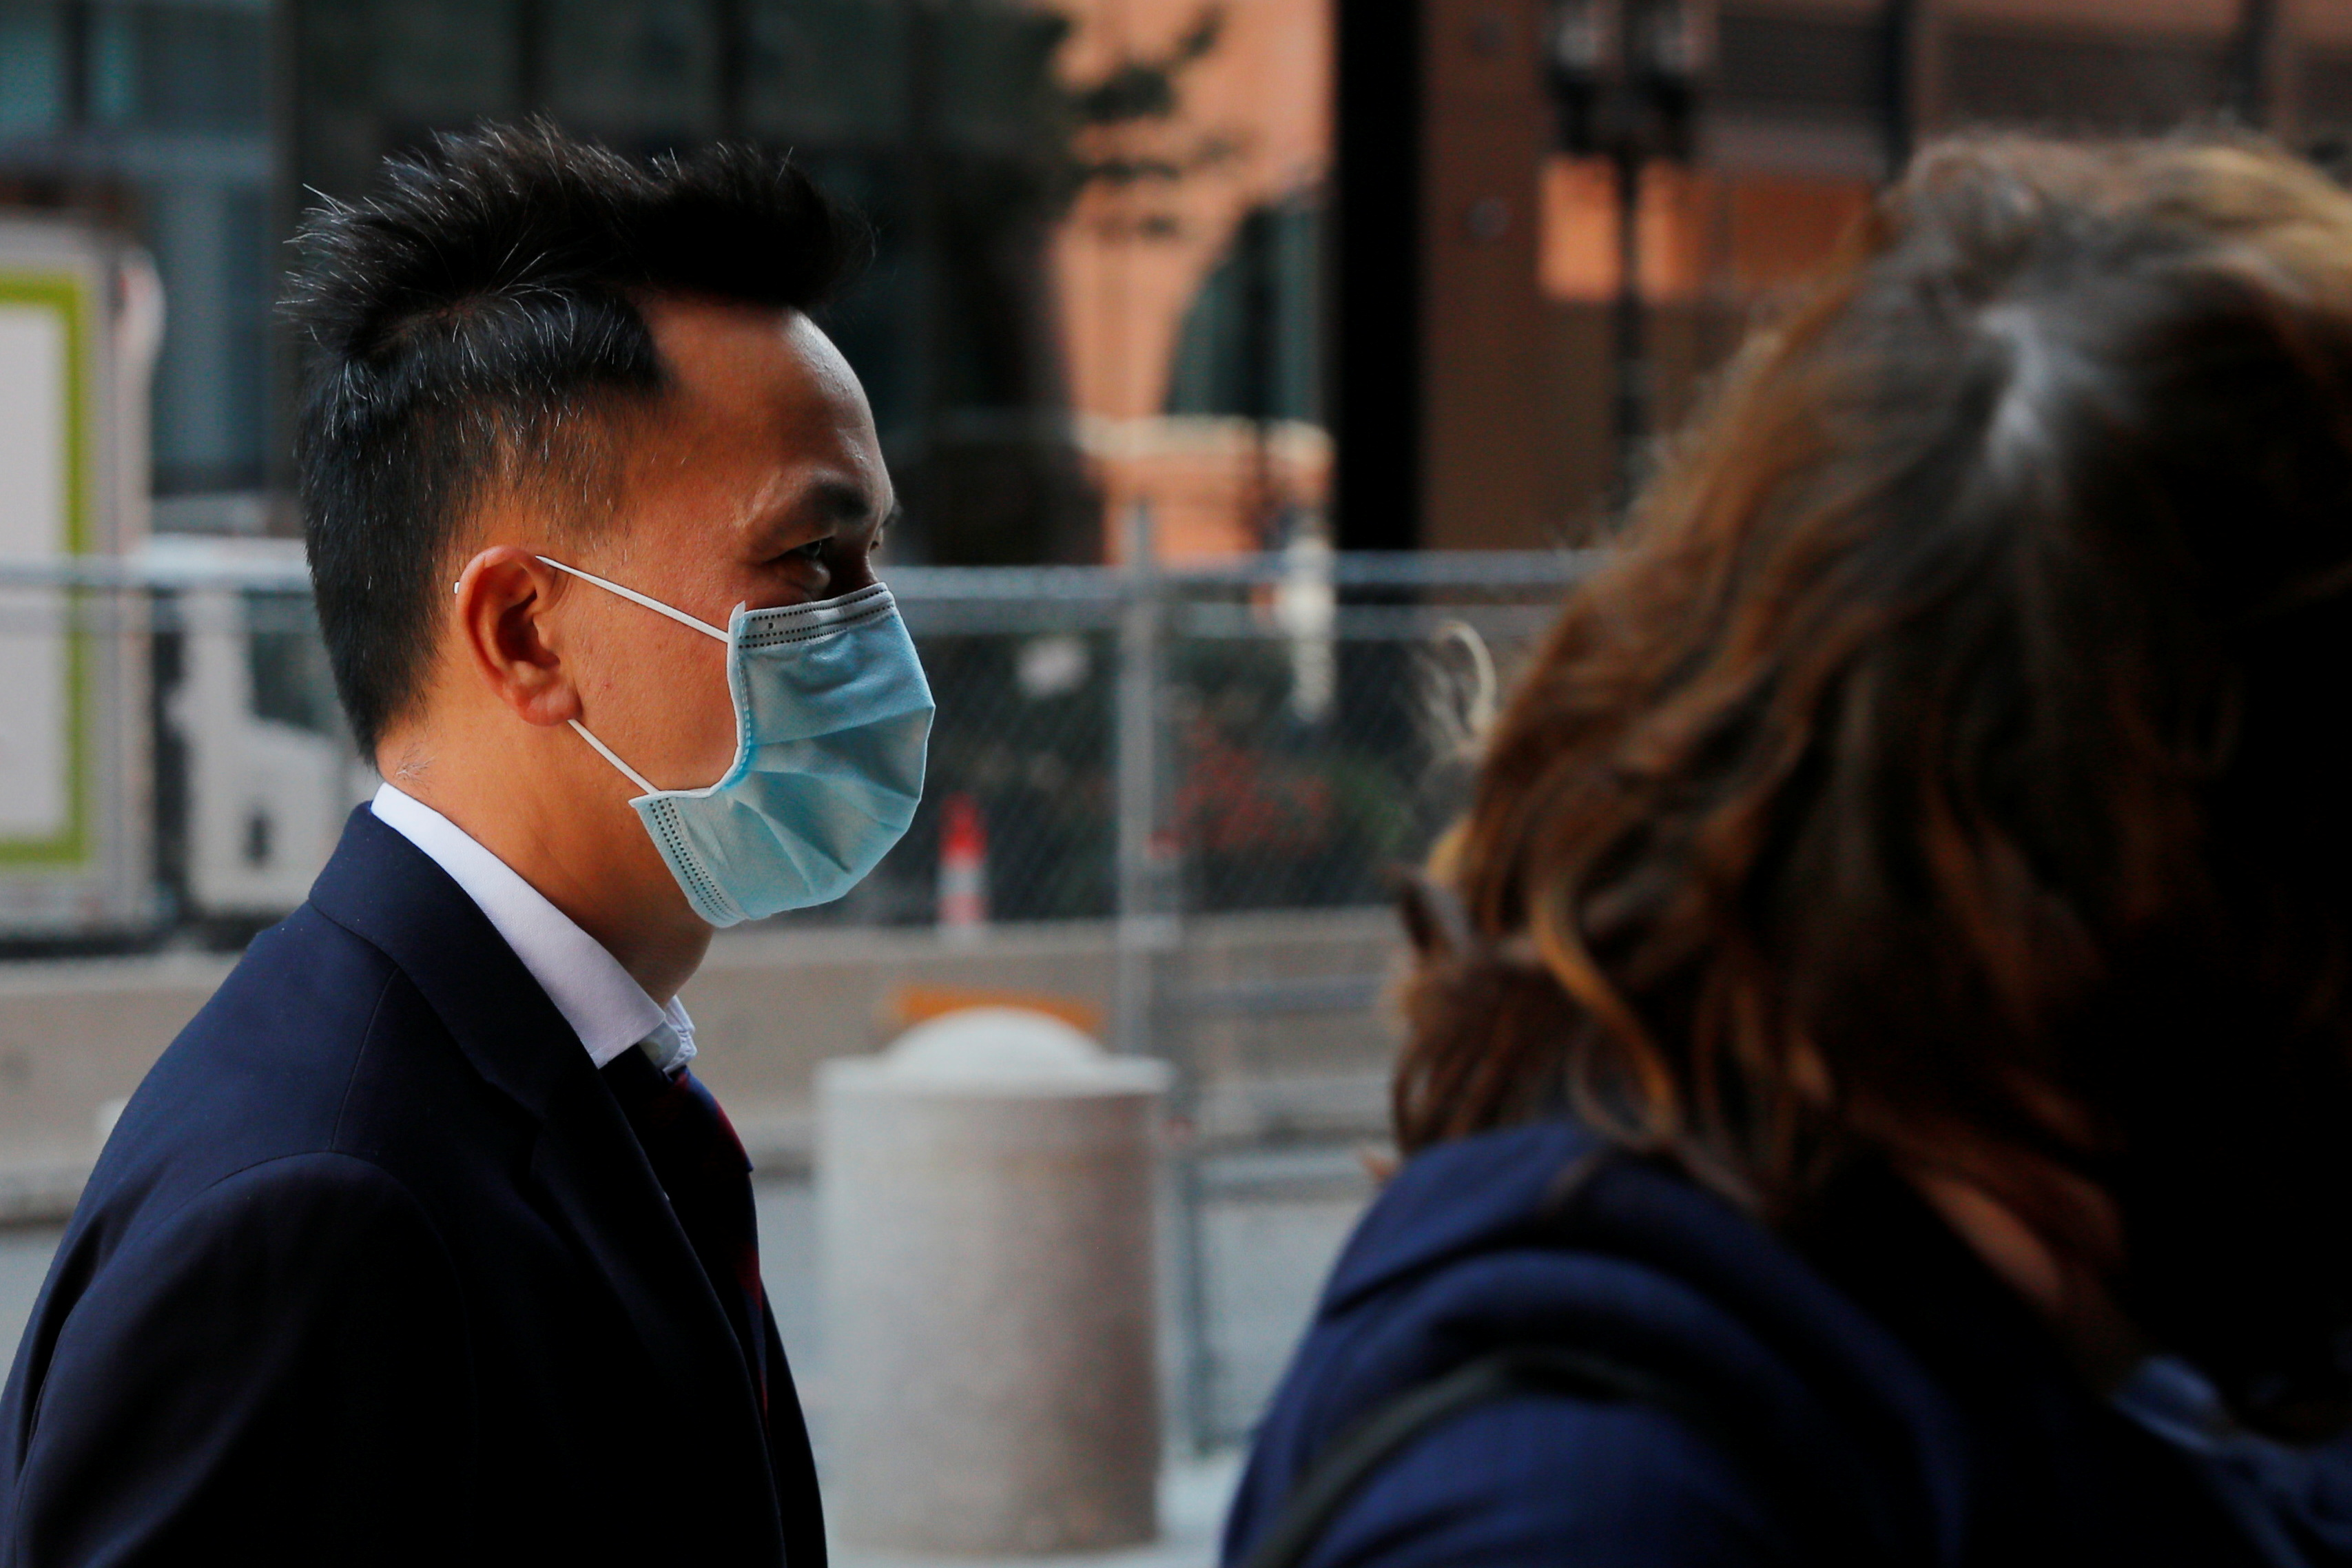 Chinese businessman Shuren Qin, a marine biologist and founder of a company that sells oceanographic instruments, arrives at the federal courthouse to be sentenced after pleading guilty to charges of smuggling marine technology out of the United States for the benefit of a Chinese military university involved in developing underwater drones, in Boston, Massachusetts, U.S., September 8, 2021.   REUTERS/Brian Snyder